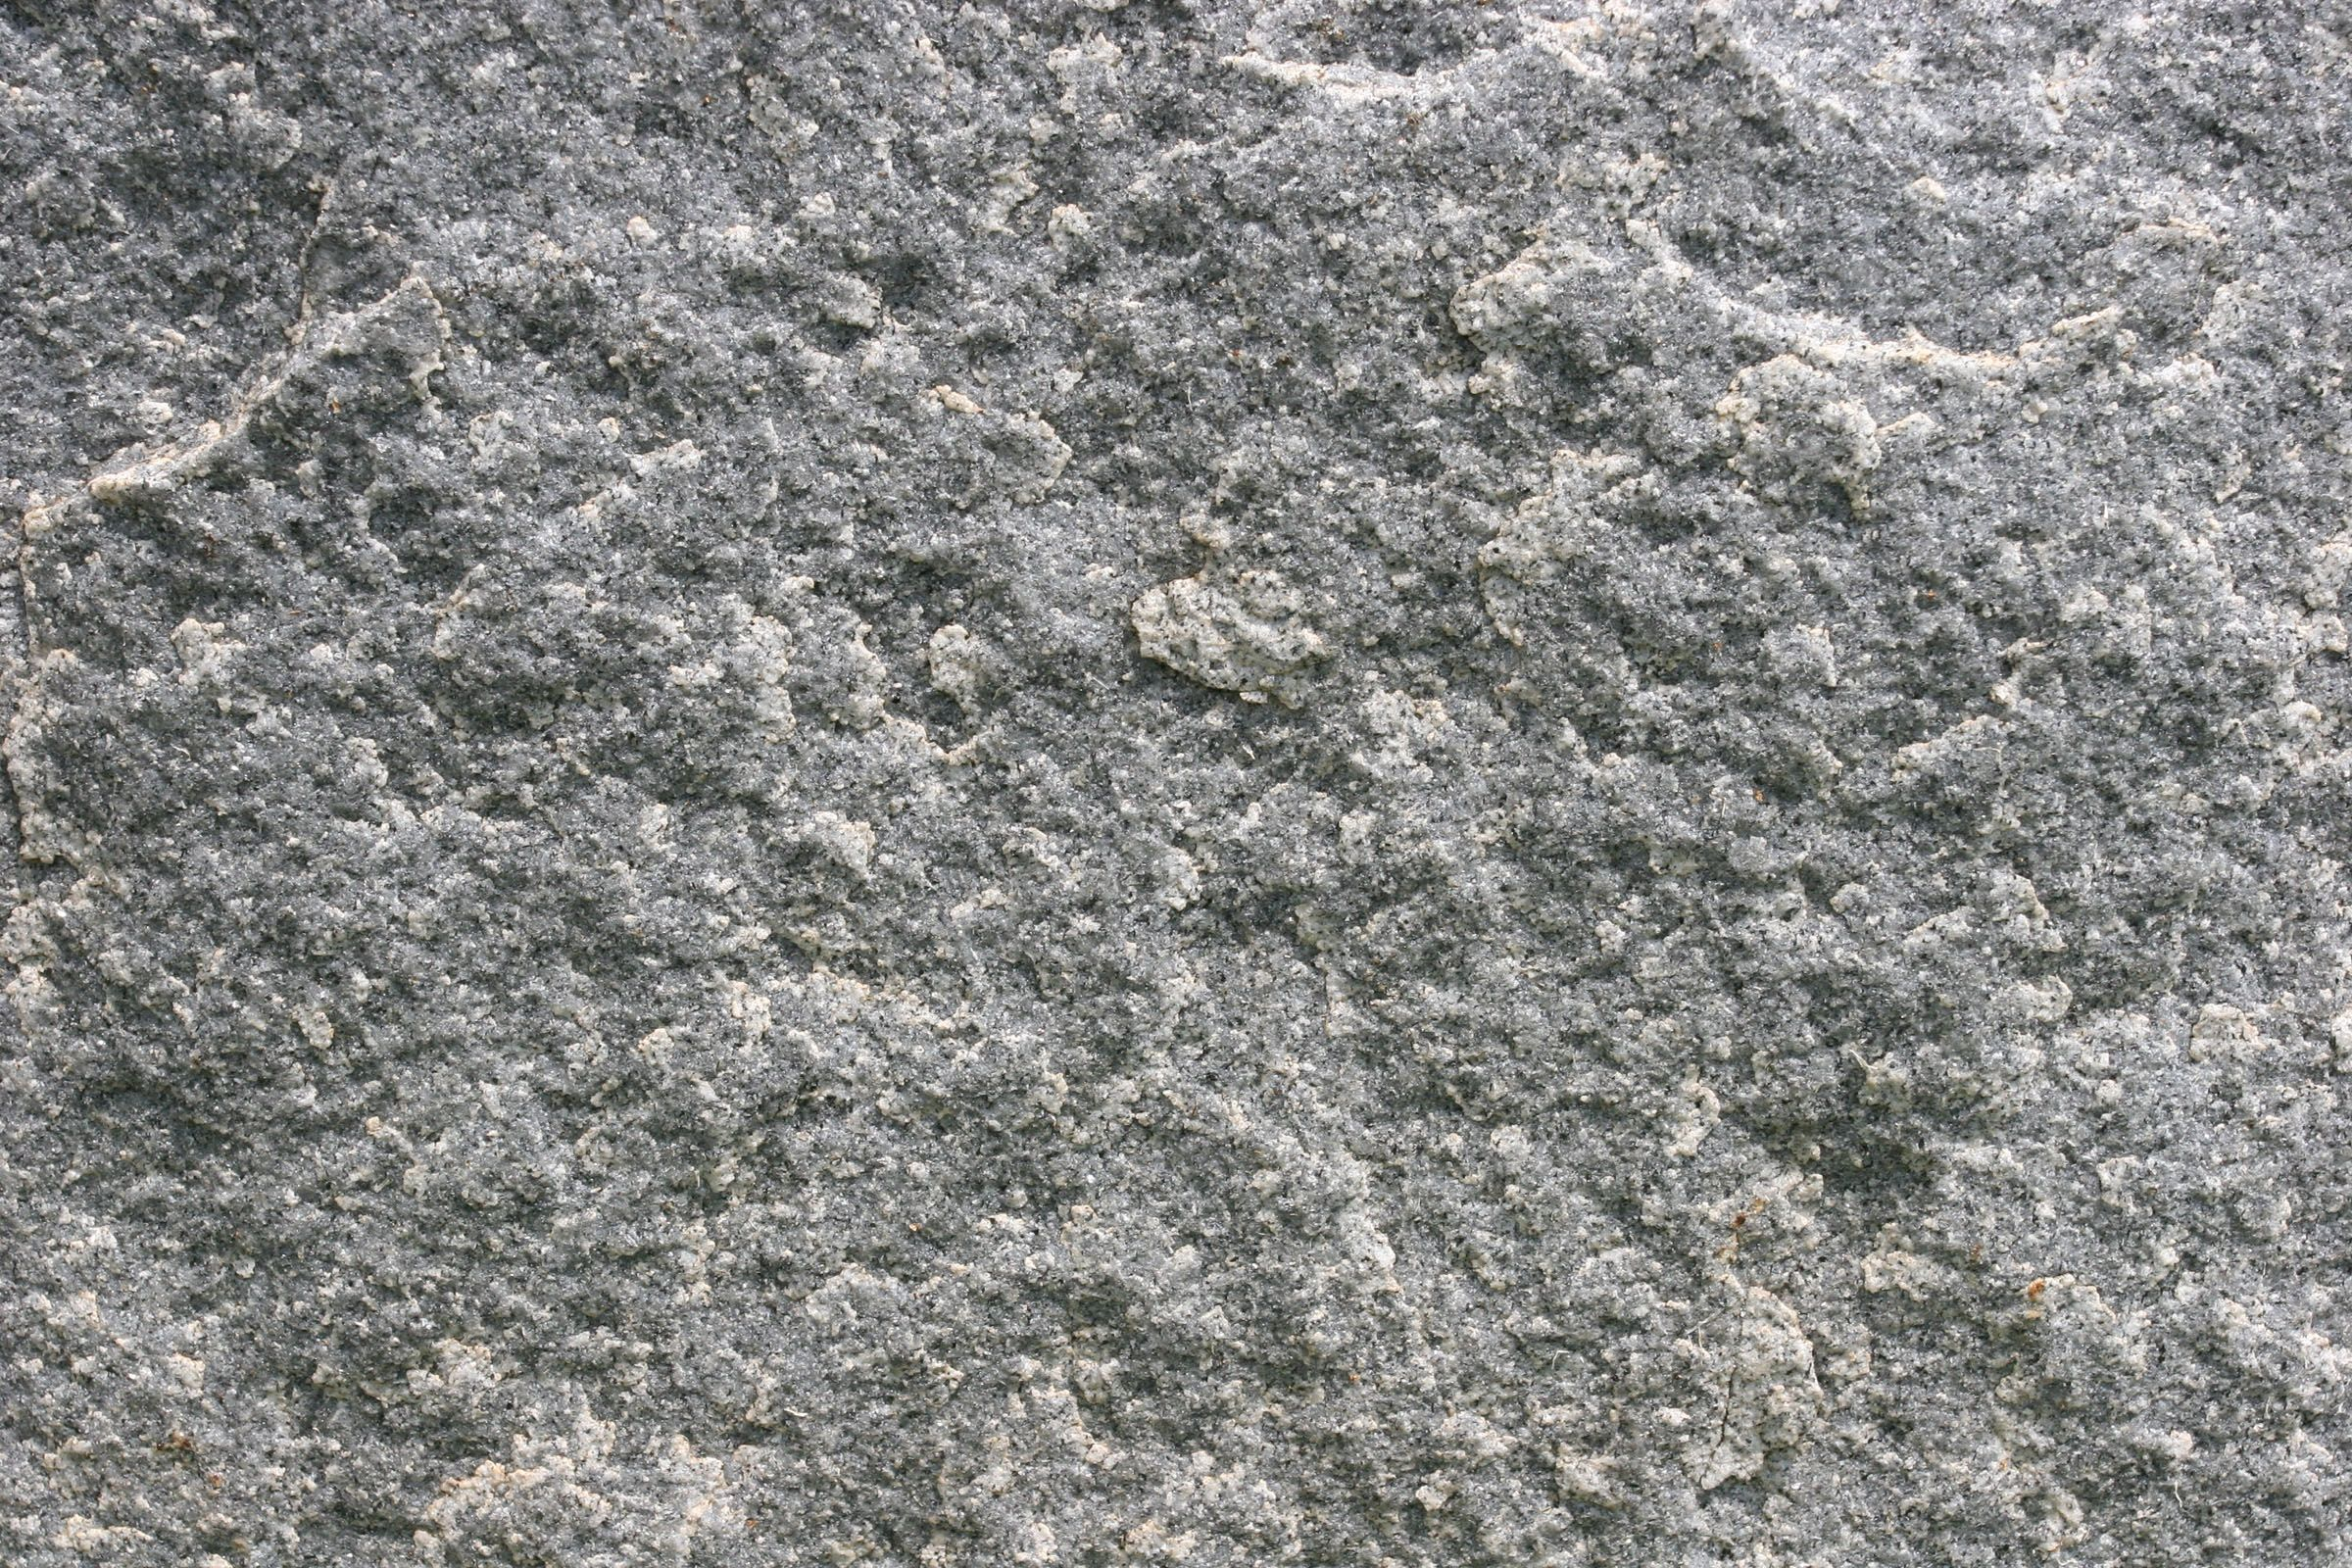 Stone textureg 24001600 references texture stones pinterest stone texture stone wallfree textures and tutorials for or projects baditri Images